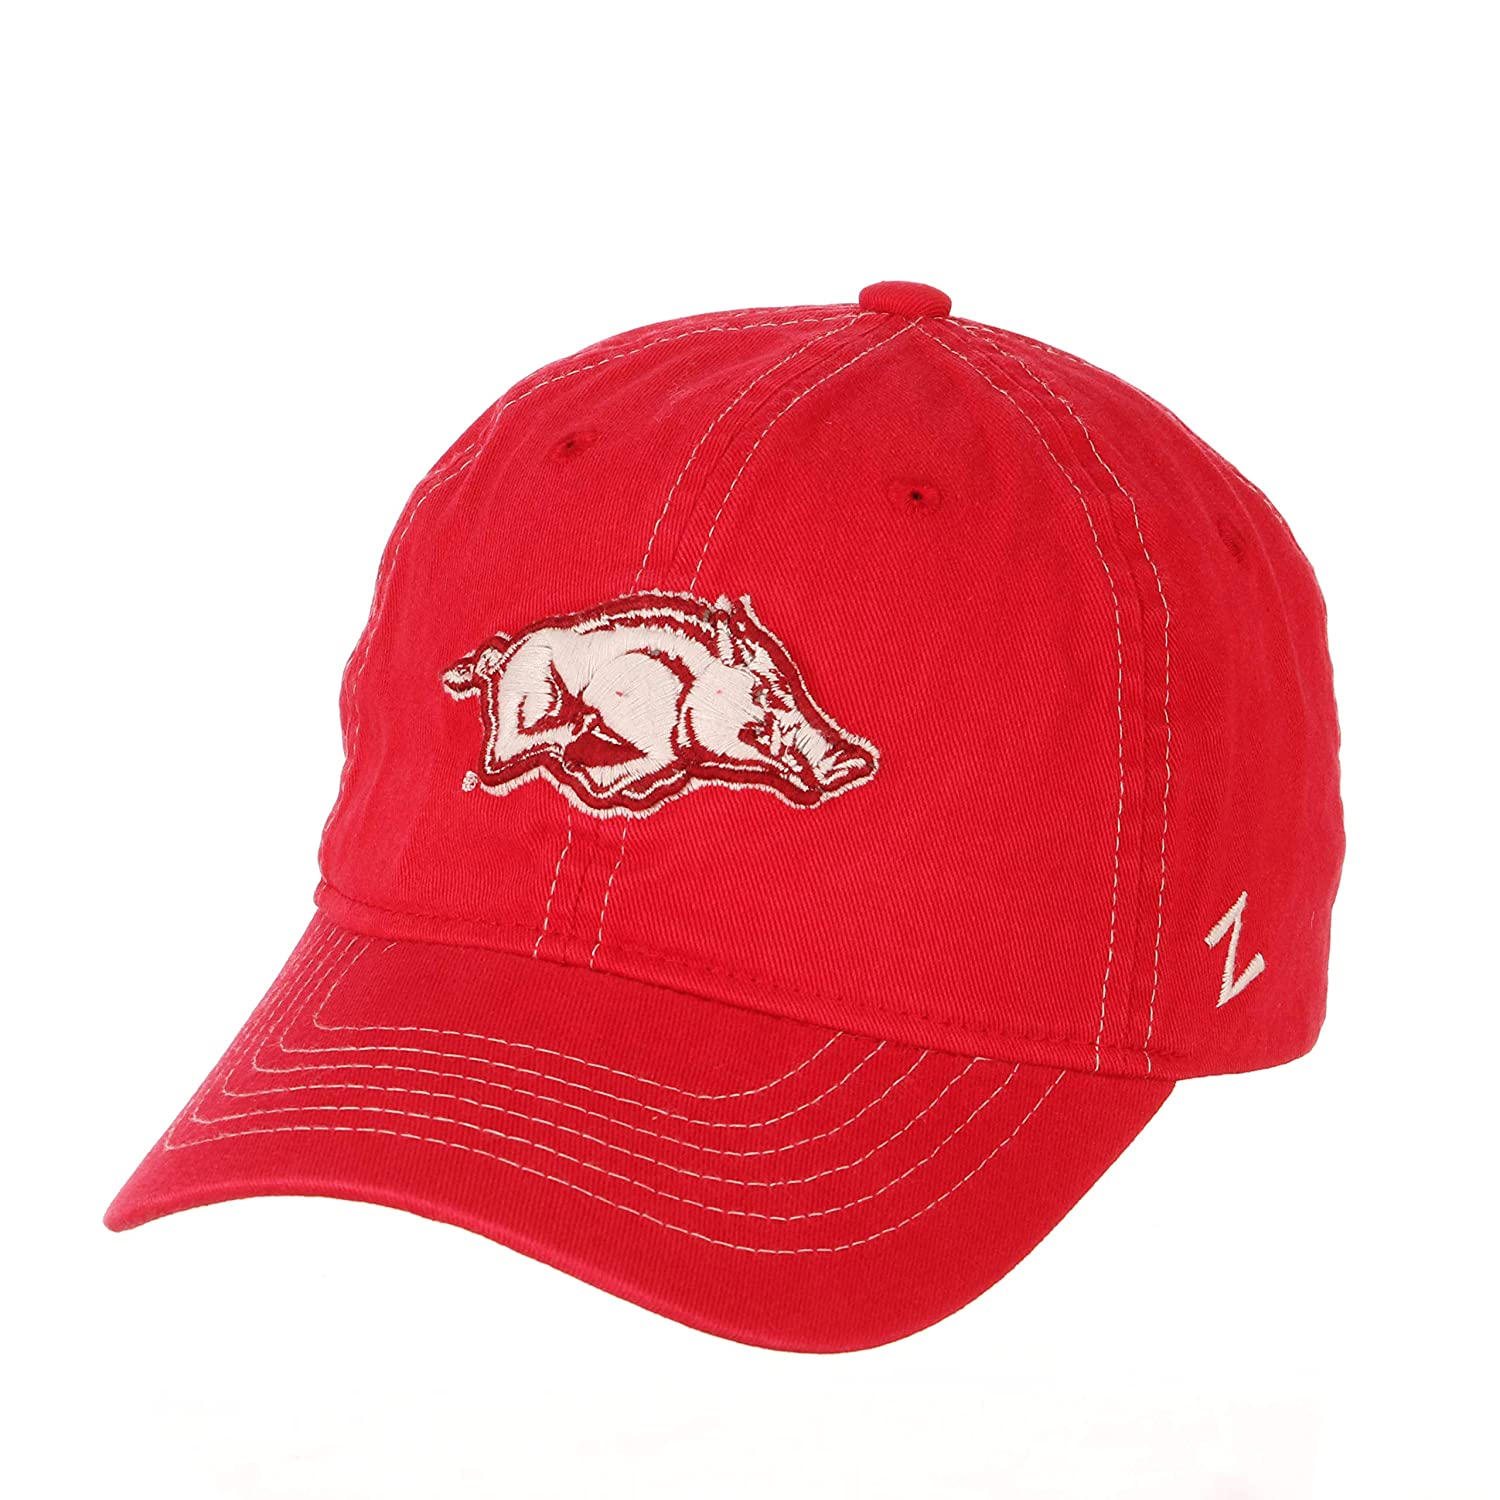 Primary Team Color Adjustable NCAA Zephyr Arkansas Razorbacks Mens Solo Washed Cotton Relaxed Hat